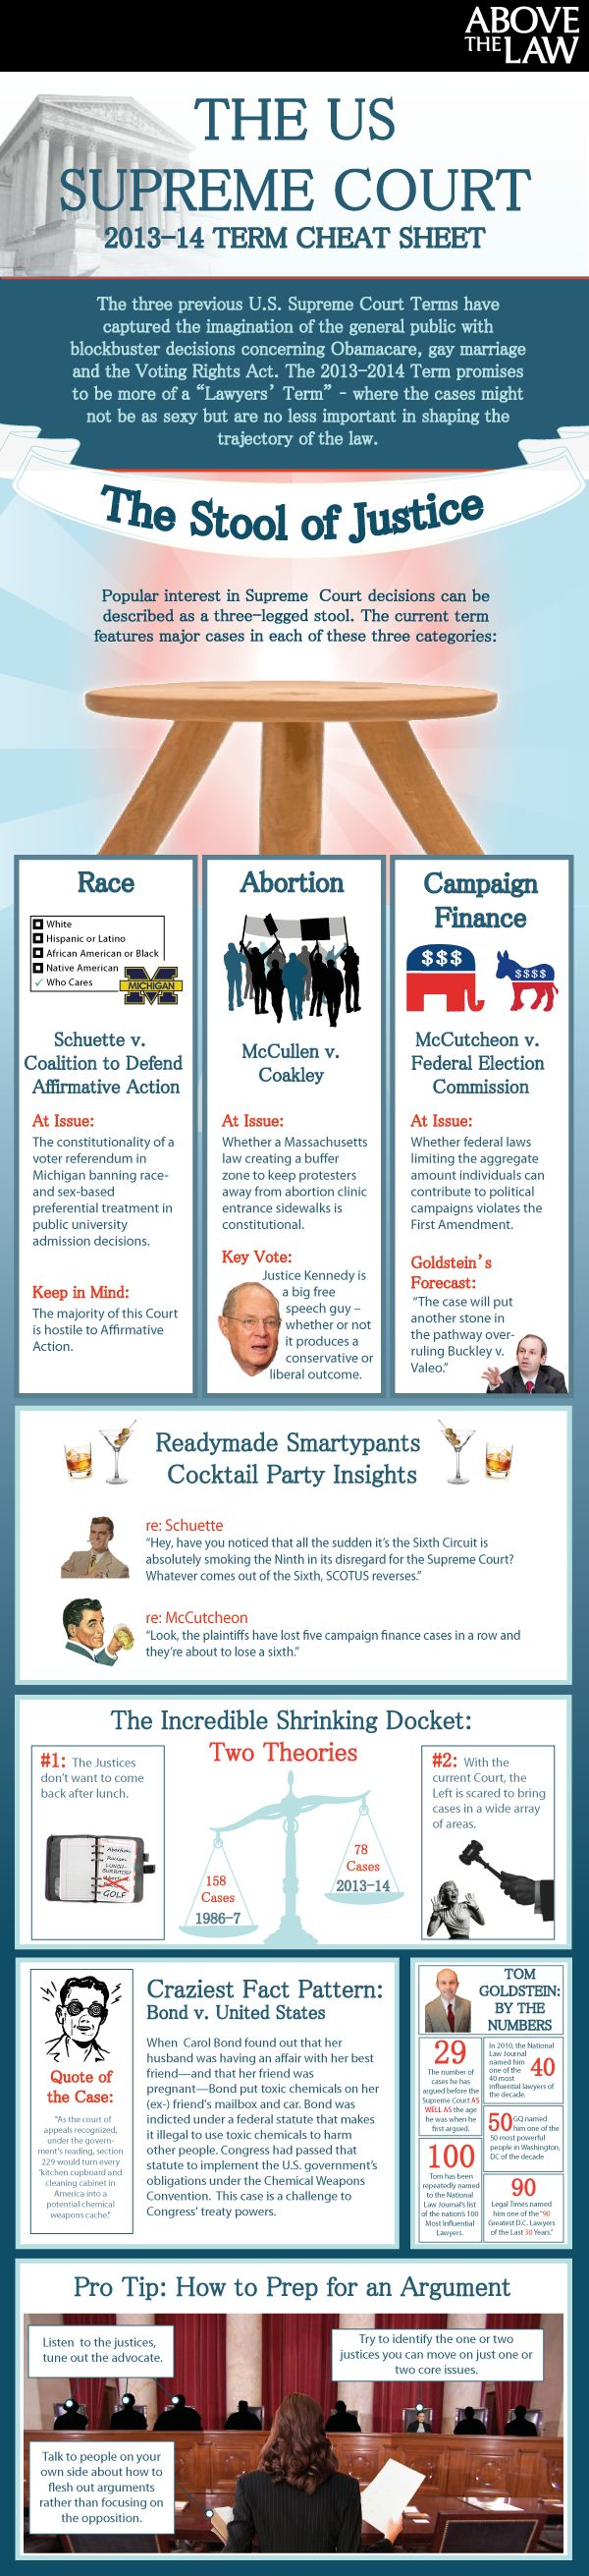 The US Supreme Court 2013-2014 Term Cheat Sheet: An Above the Law Infographic